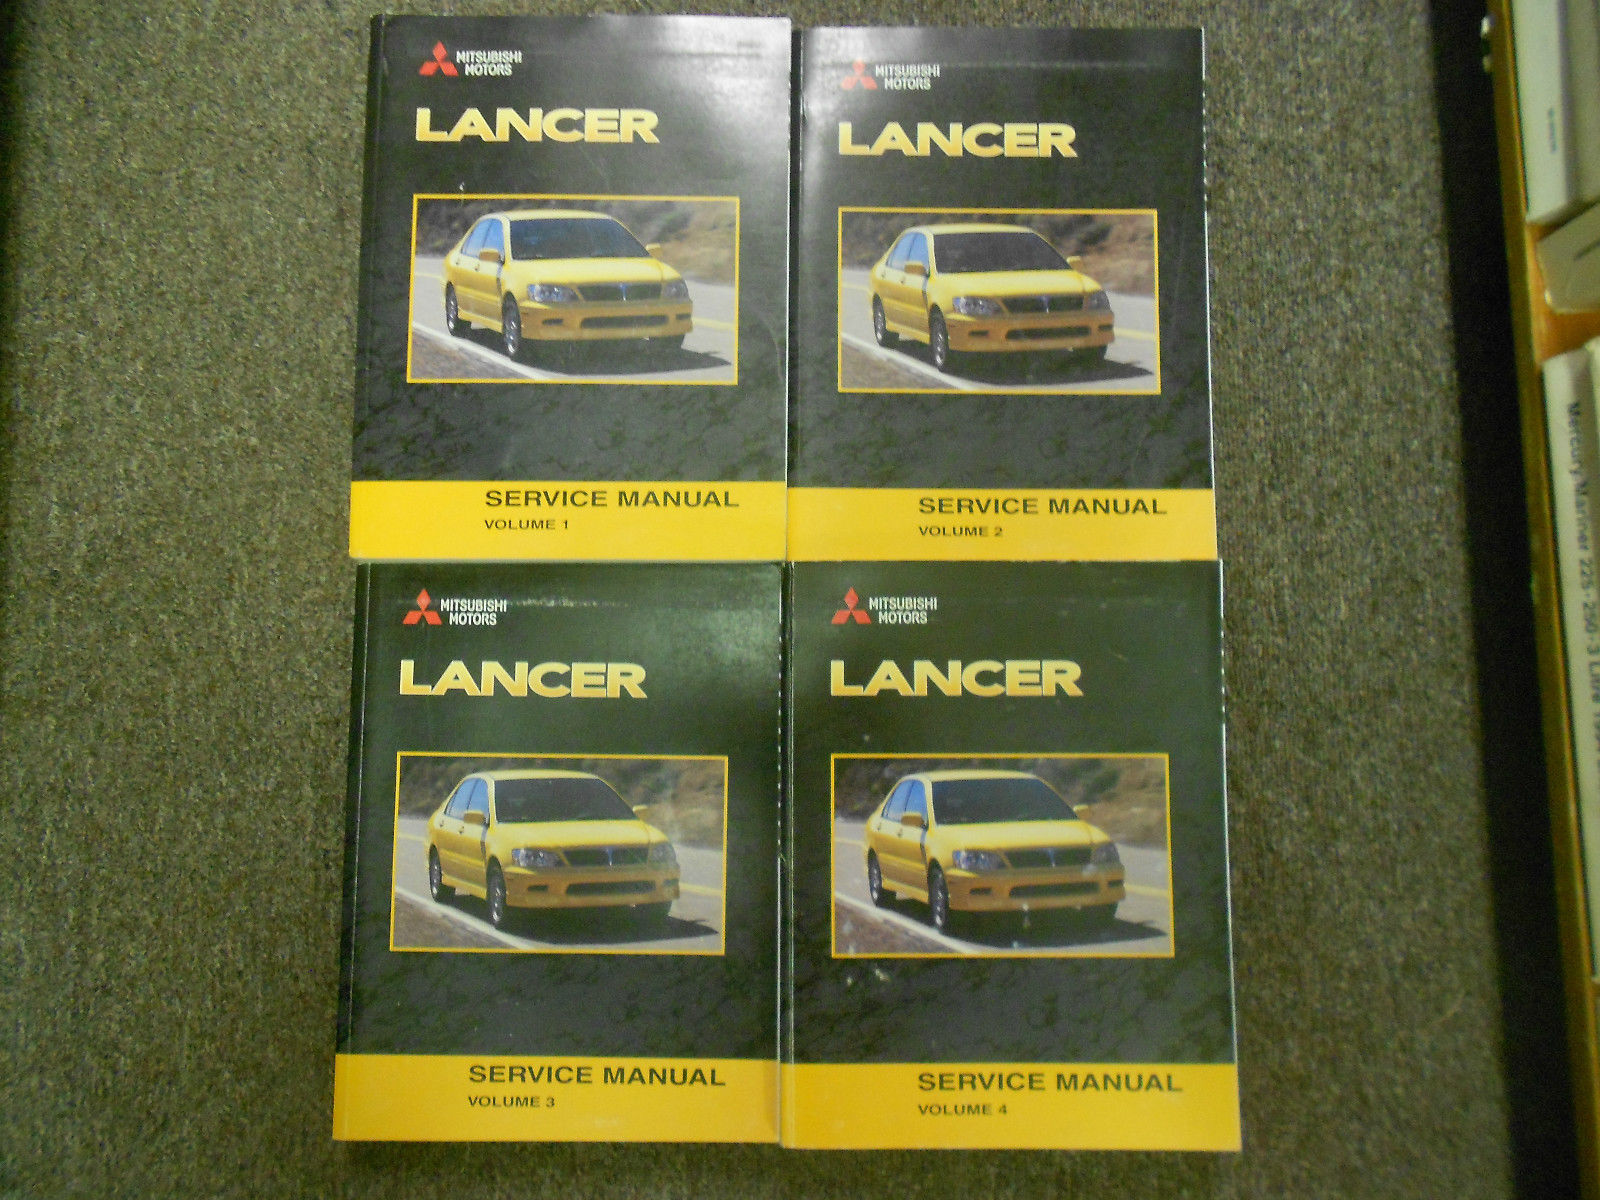 2003 MITSUBISHI Lancer Service Repair Shop Manual FACTORY OEM 4 VOL SET BOOK x